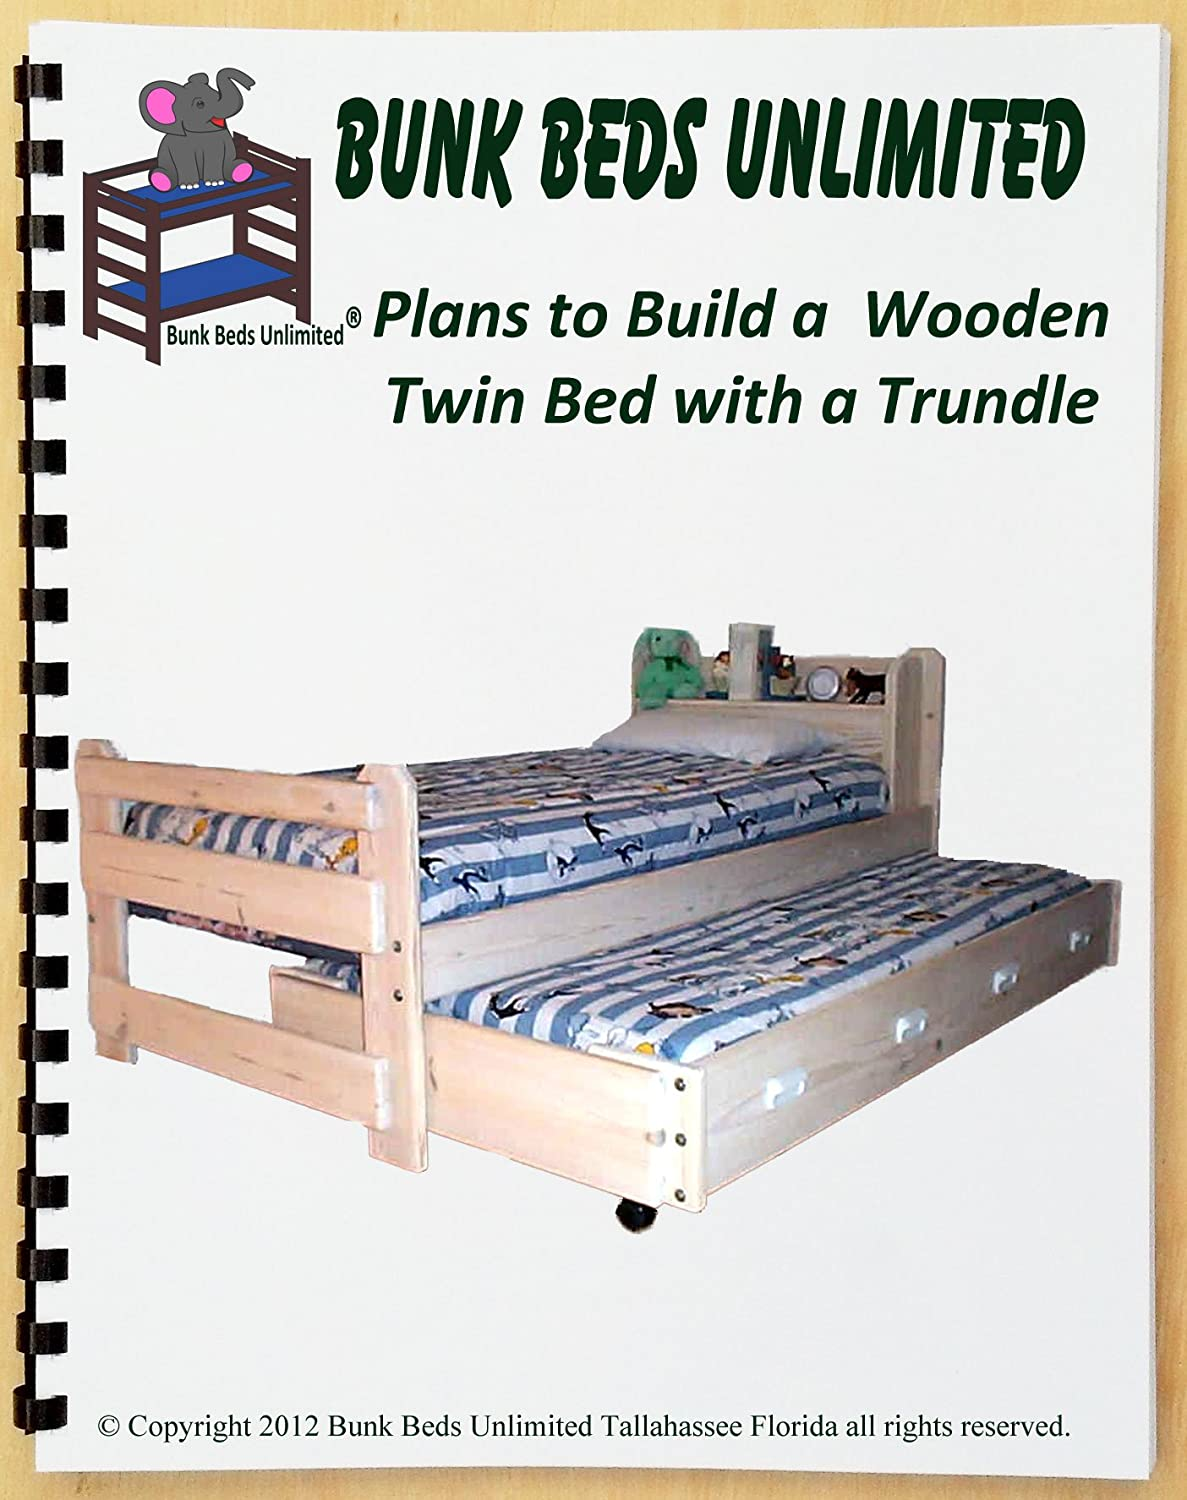 Bunk Beds Unlimited Trundle Bed Diy Woodworking Plan To Build Your Own Frontiersman Model Twin Size